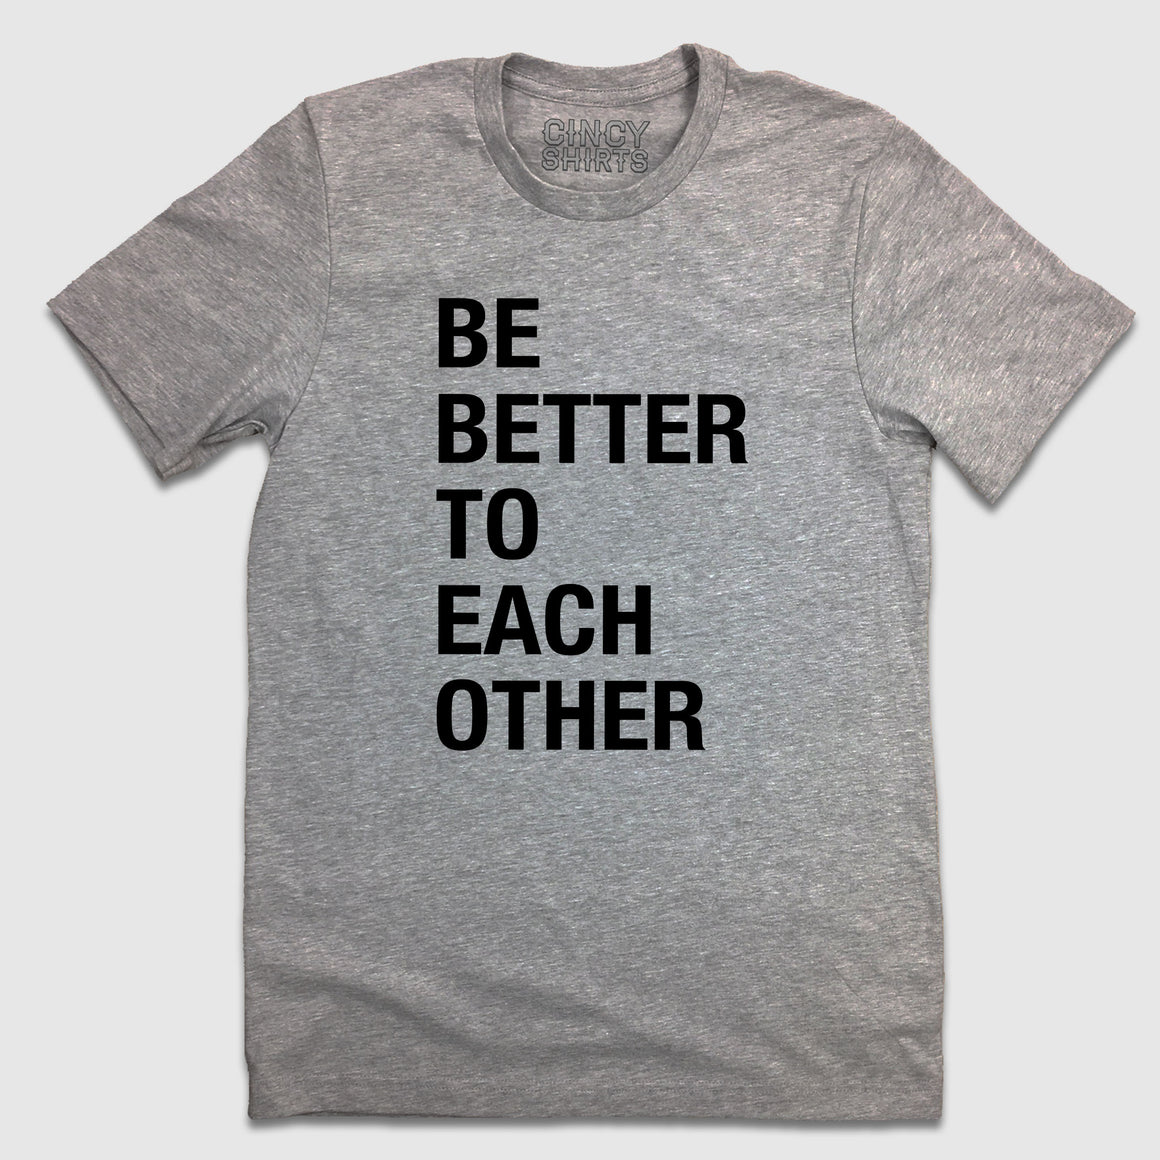 Be Better To Each Other - Cincy Shirts